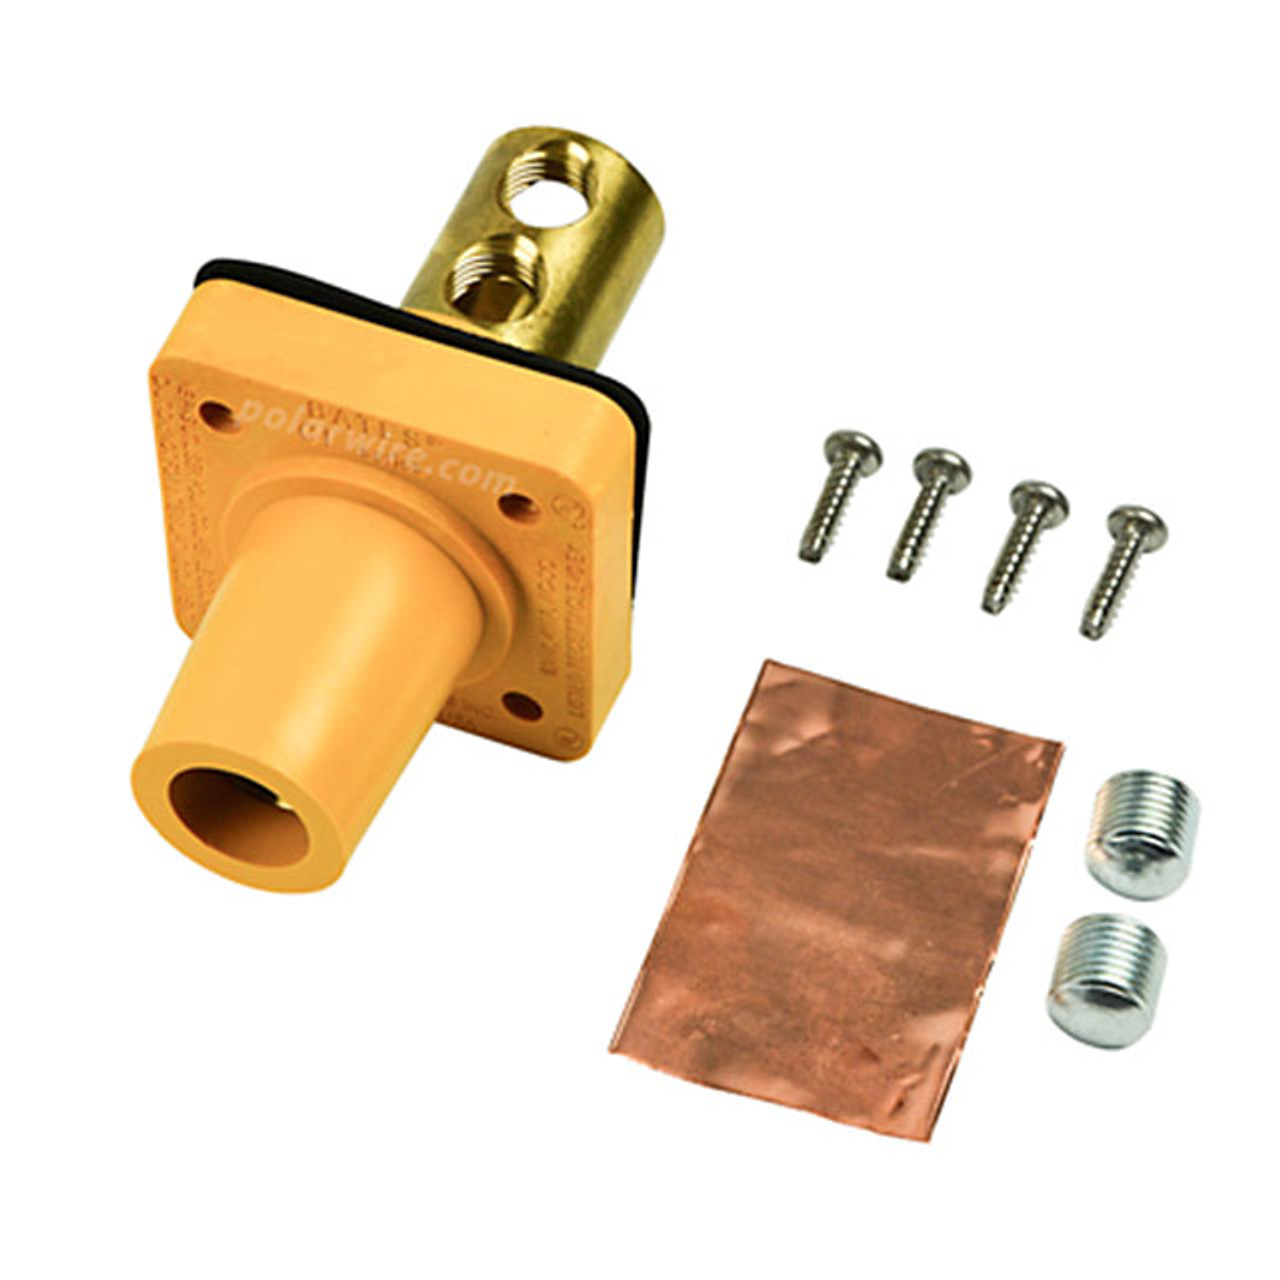 CAM LOCK 400A PANEL FEM YELLOW SET SCREW 2/0-4/0